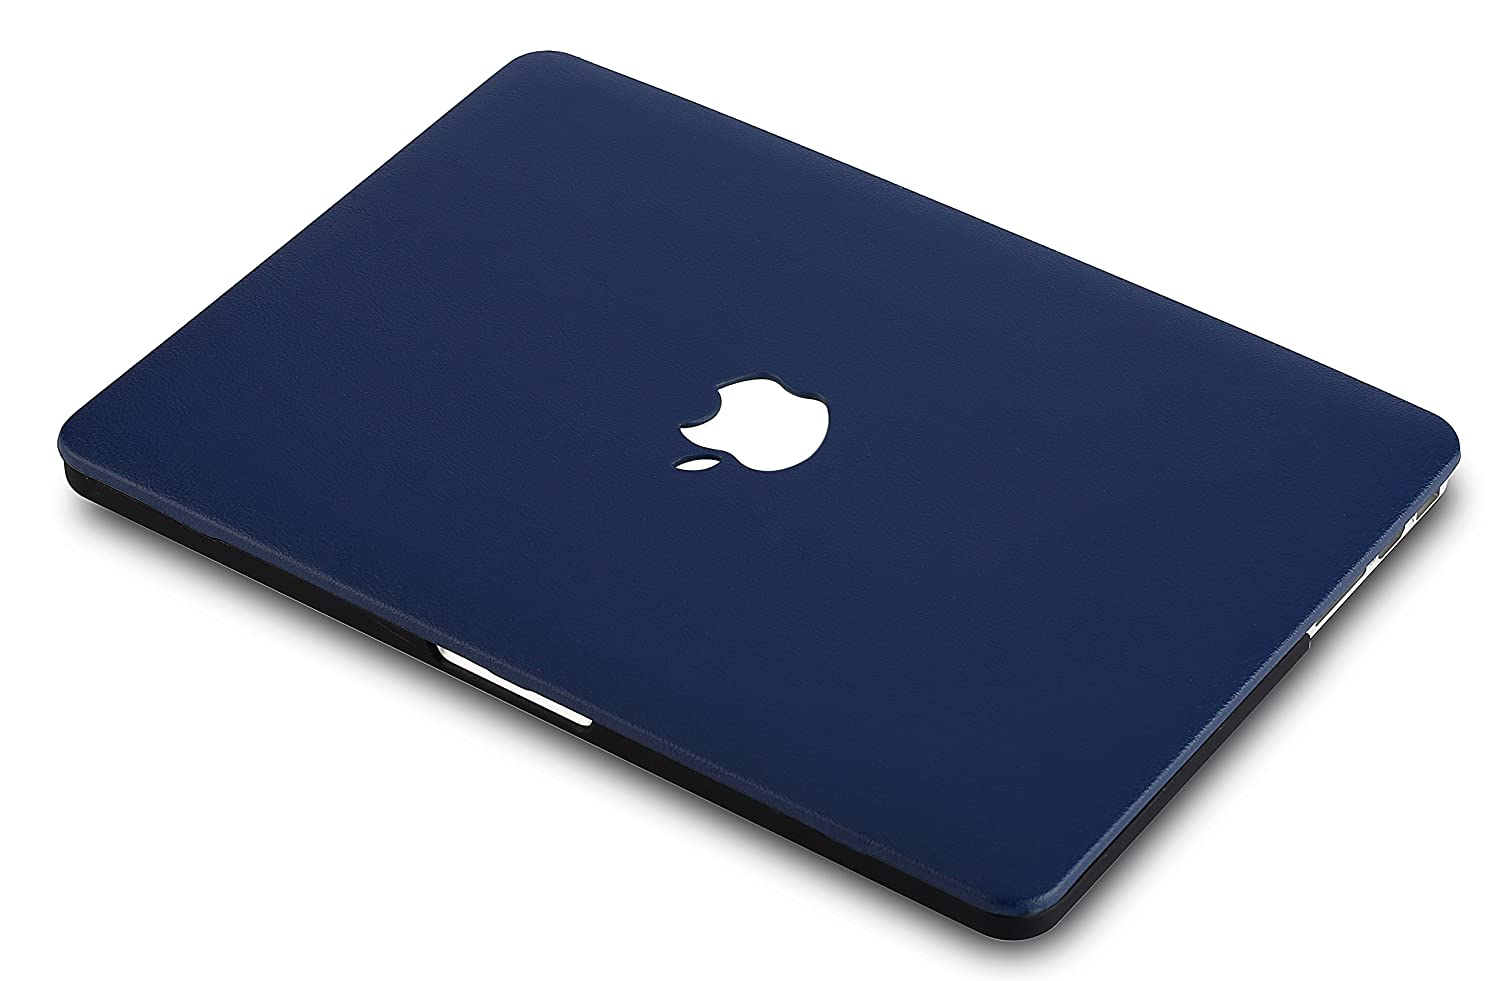 Cuero Azul Marino KECC MacBook Air 13 Pulgadas Funda Dura Case Cover MacBook Air 13.3 Ultra Delgado Cuero {A1466//A1369}